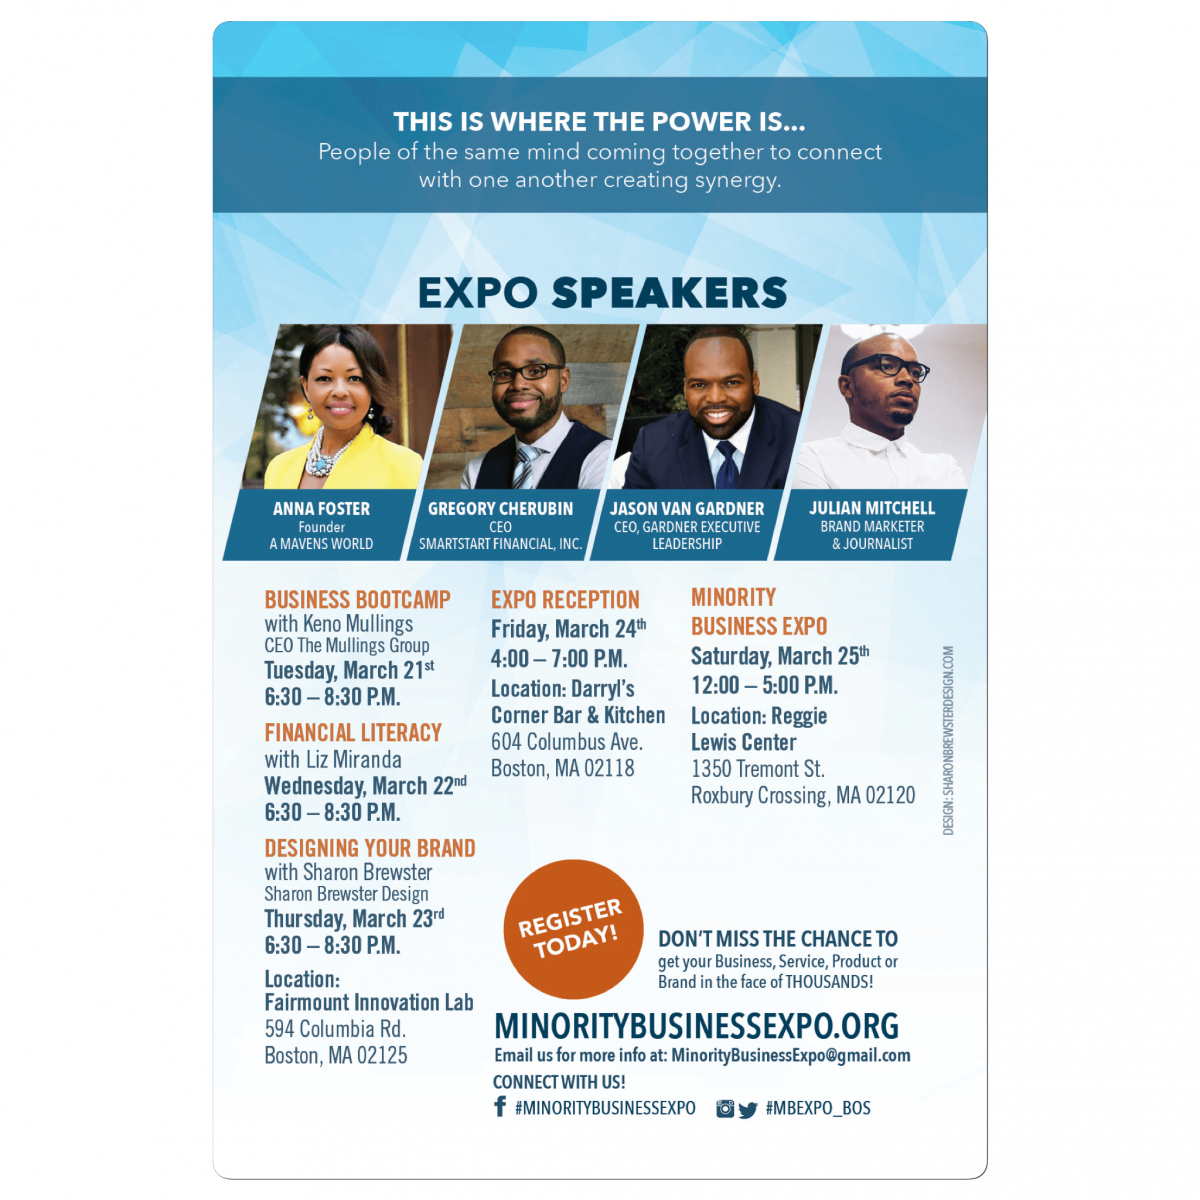 Minority Business Expo – A Maven\'s World